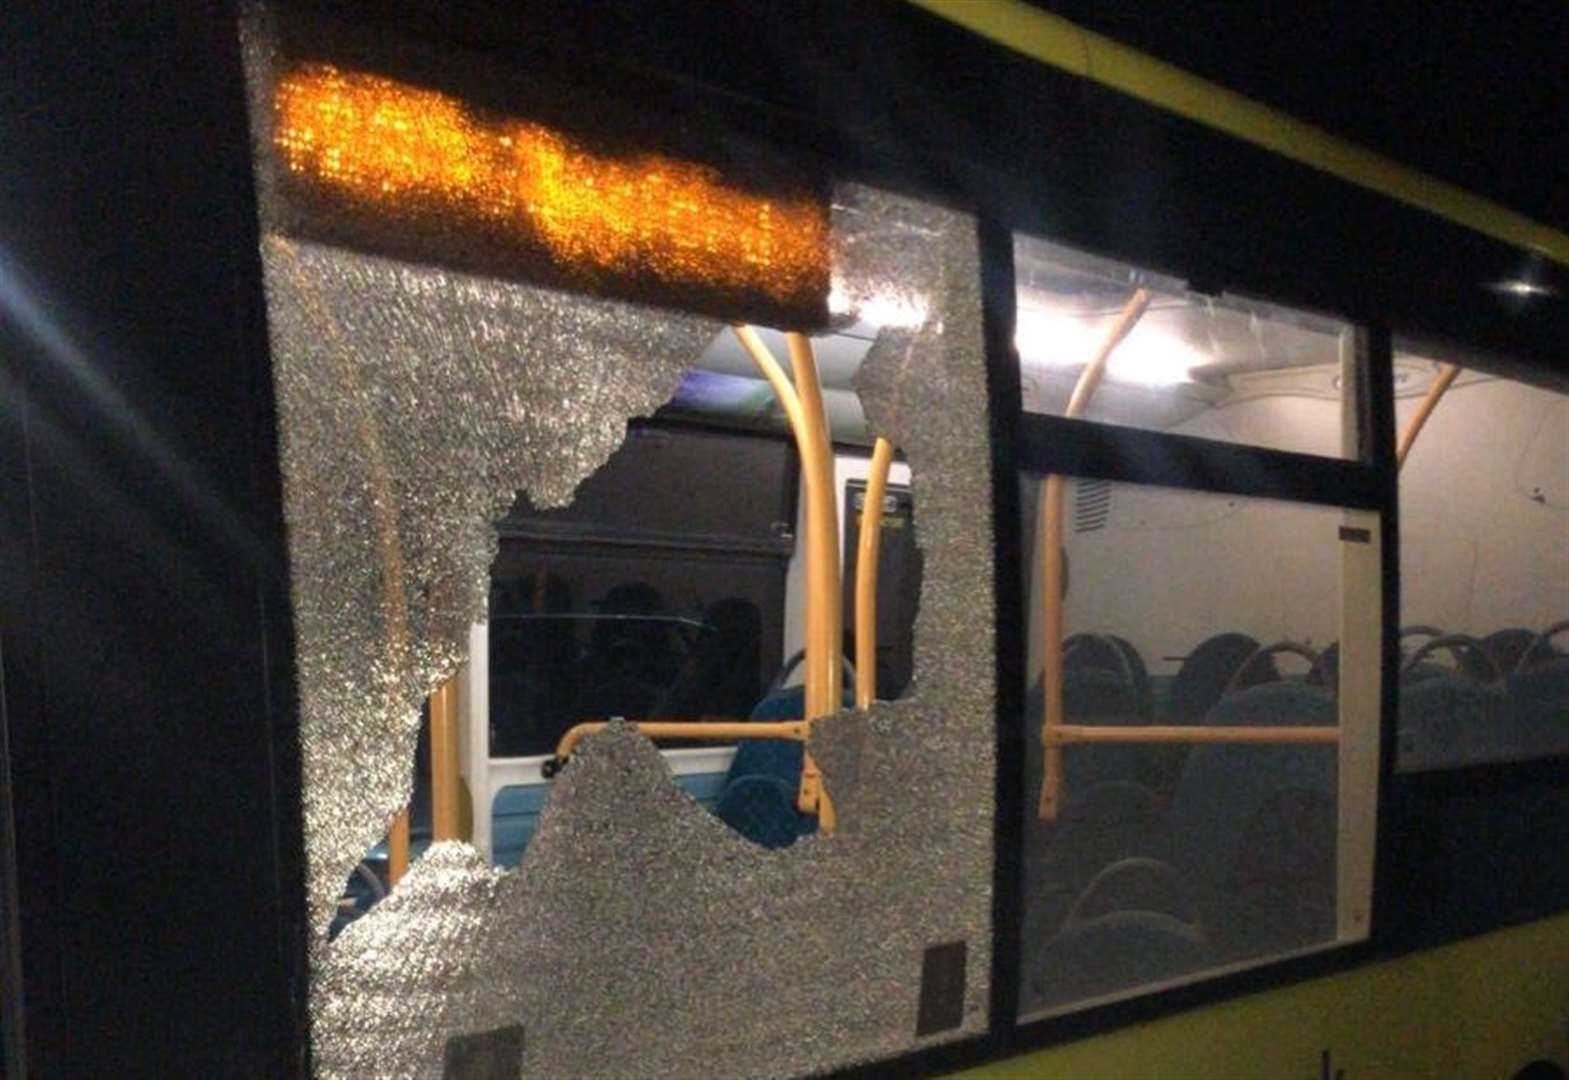 Bus route axed after yob attack